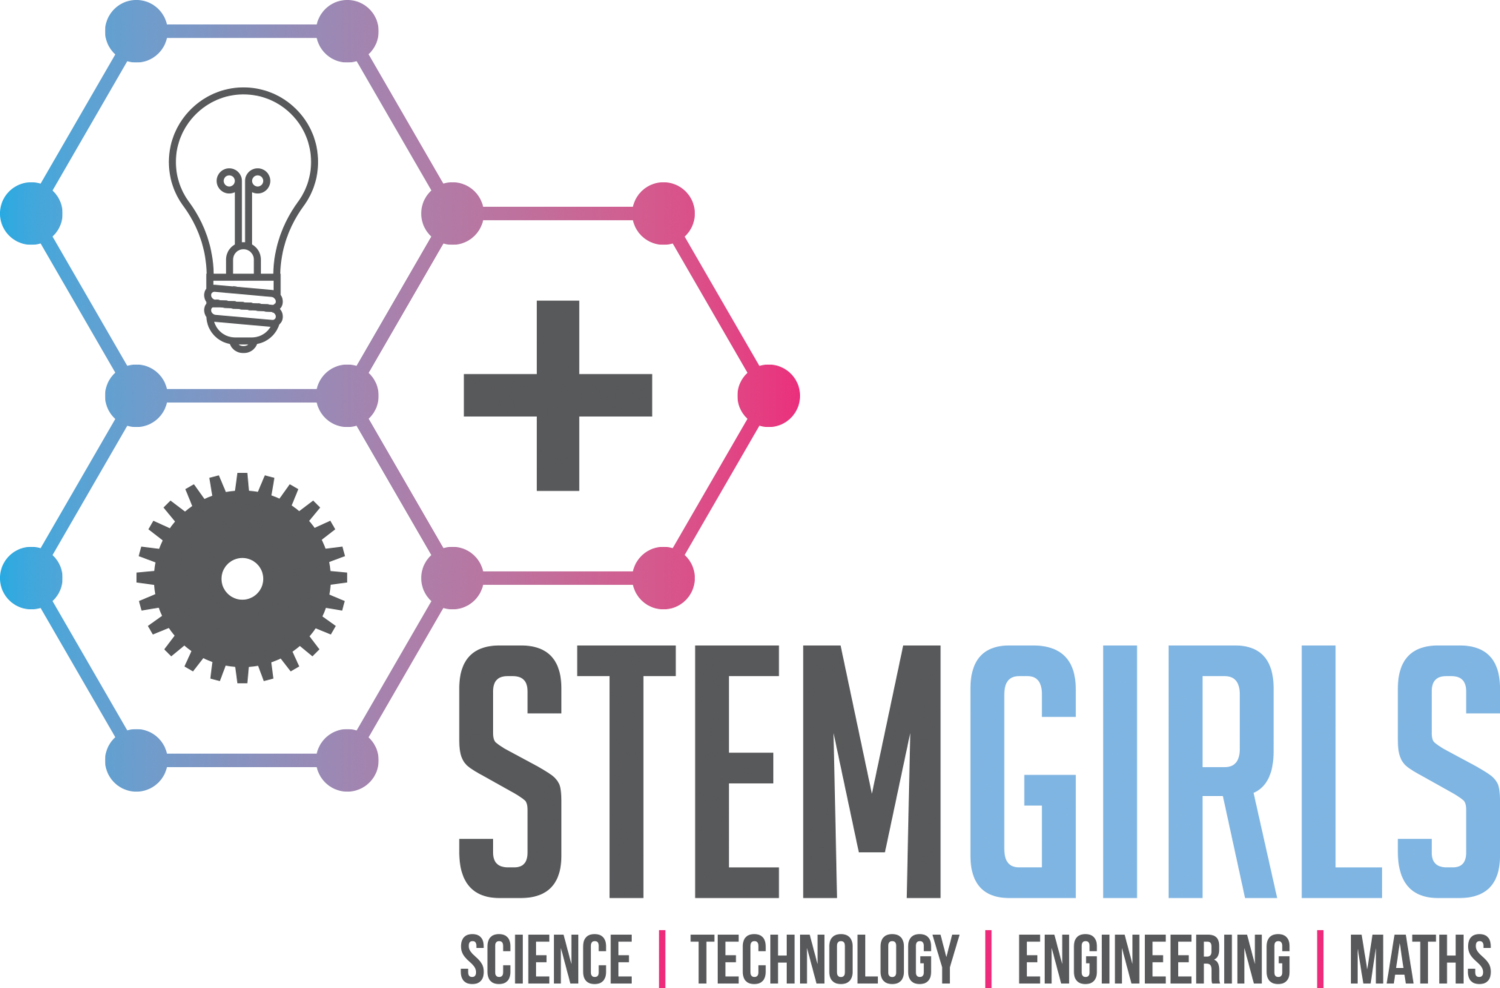 STEMgirls Club